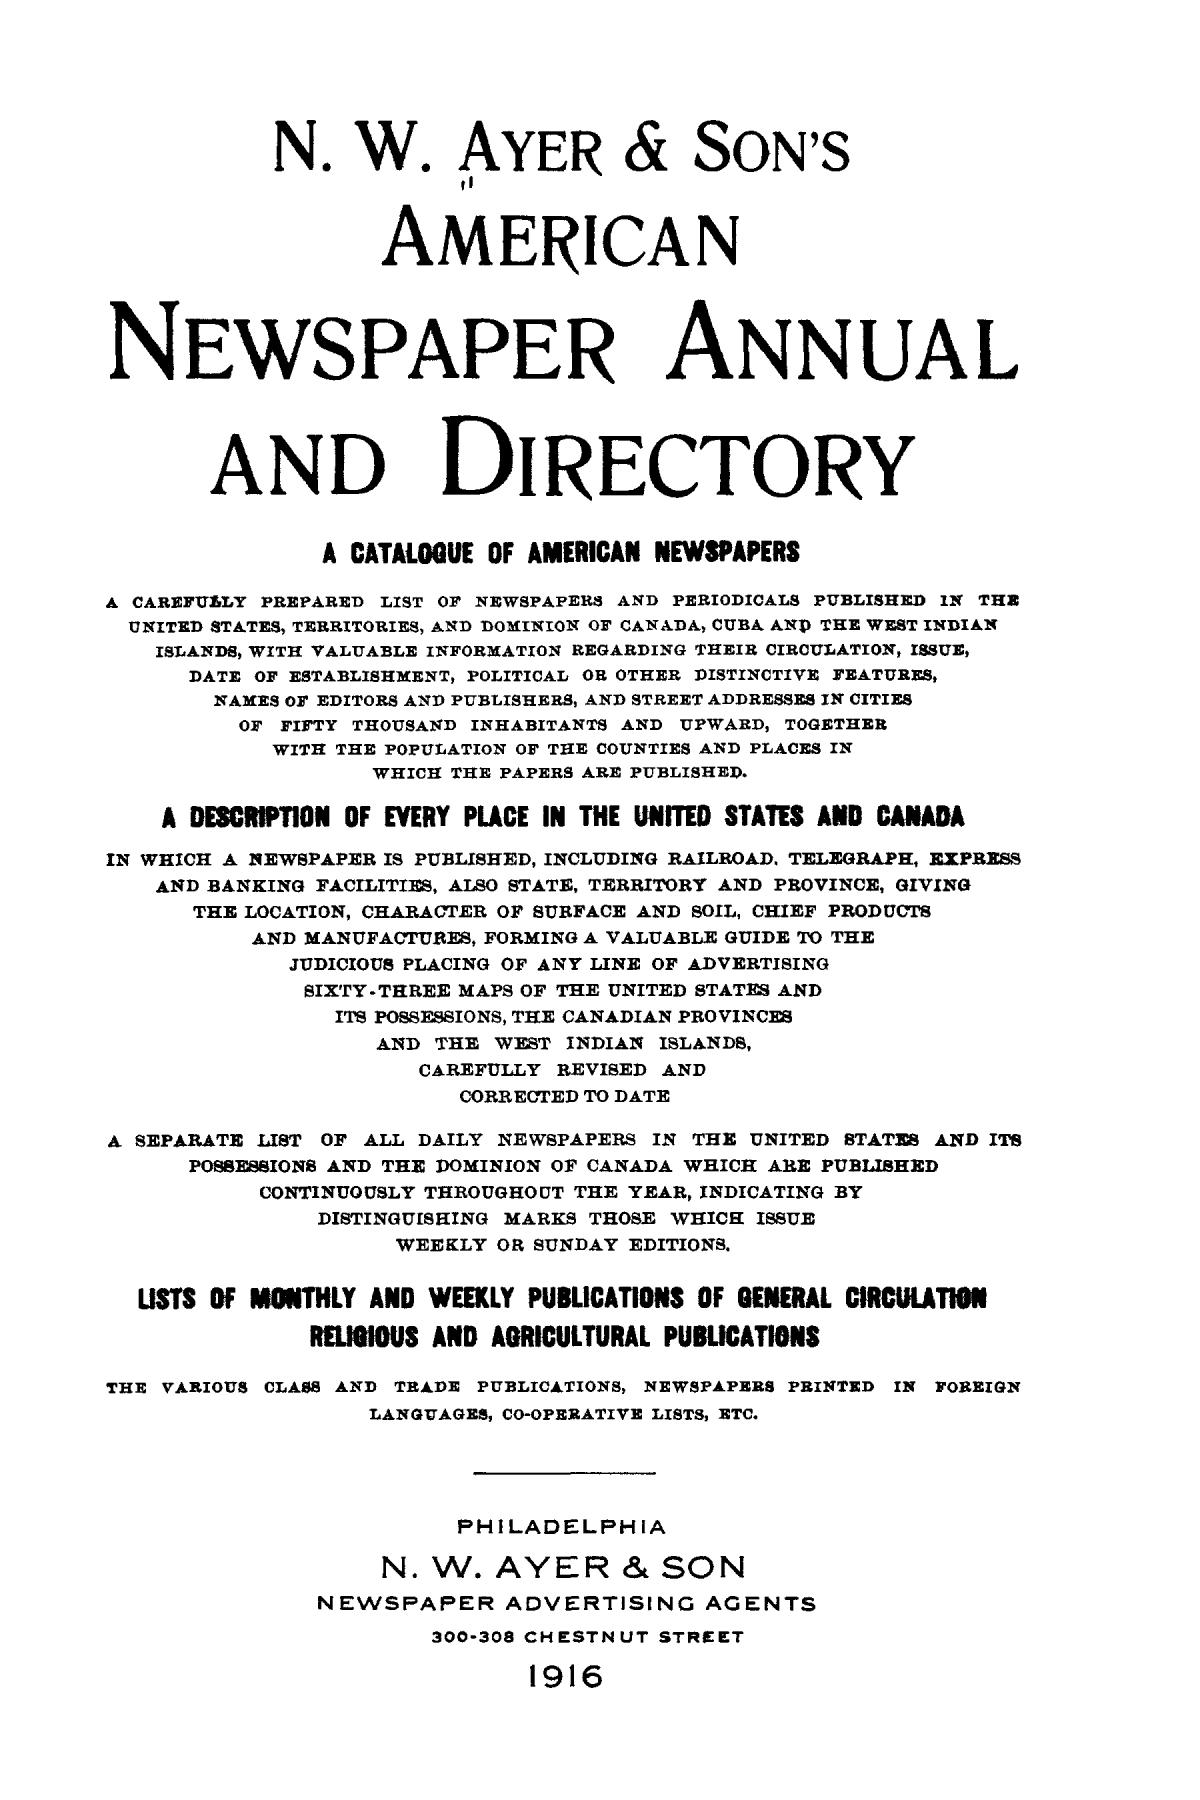 N. W. Ayer & Son's American Newspaper Annual and Directory: A Catalogue of American Newspapers, 1916, Volume 1                                                                                                      Title Page